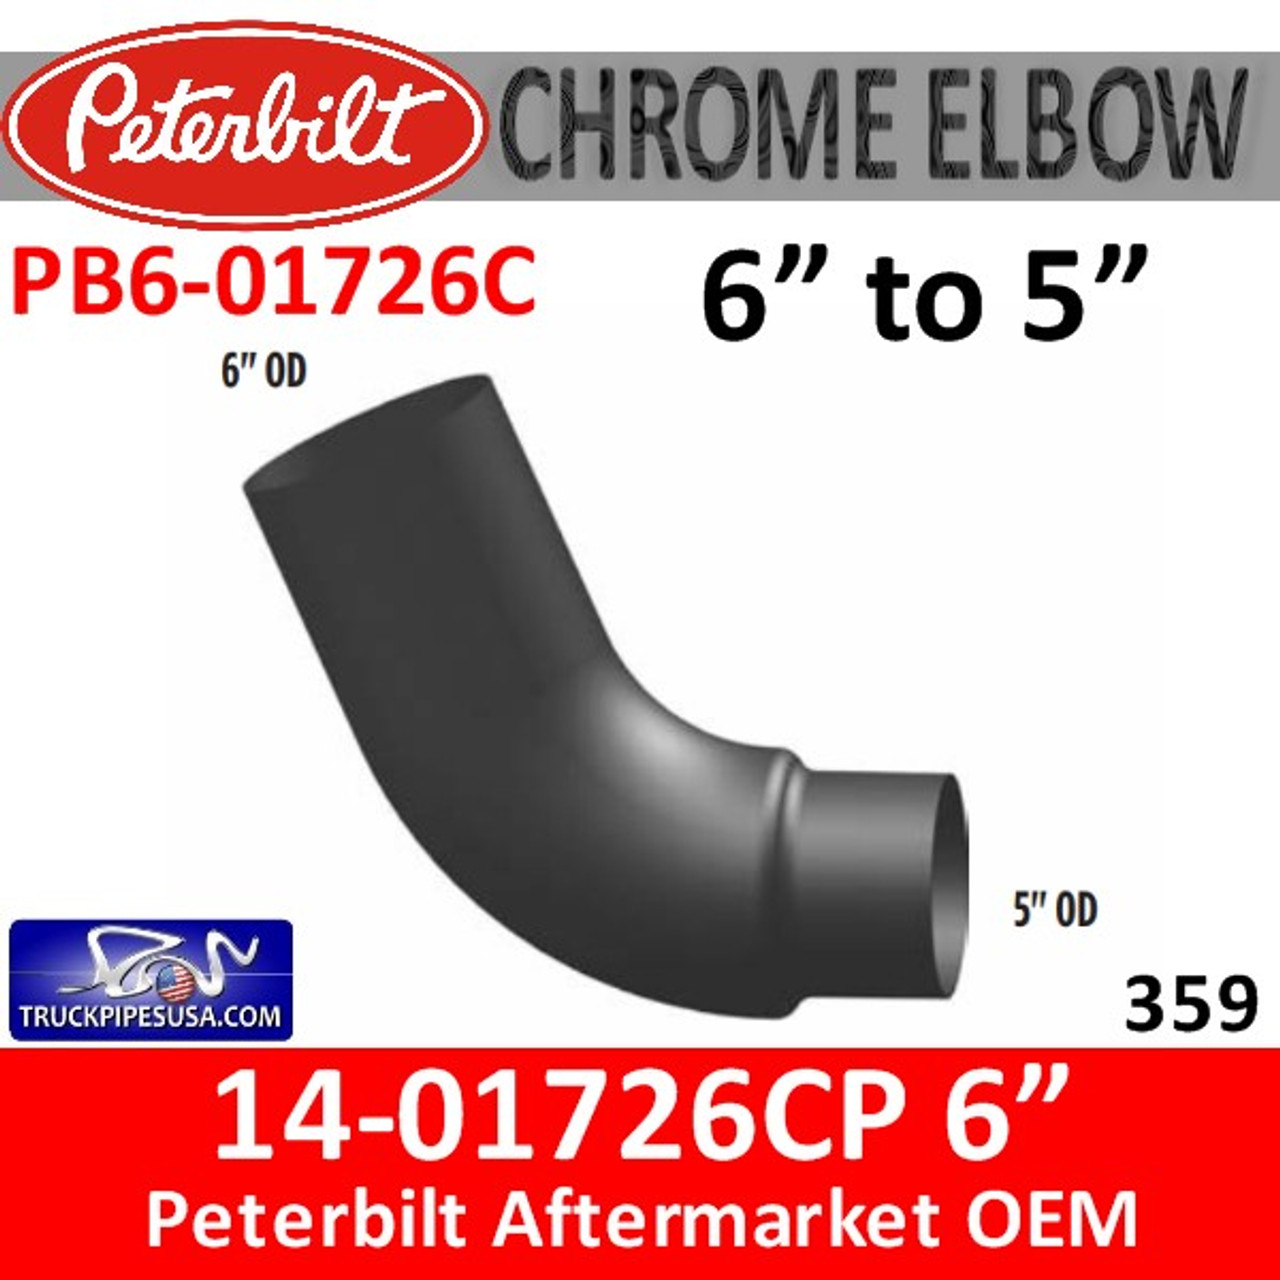 "PB6-01726C 14-01726 6"" to 5"" Peterbilt 379 Chrome Elbow PB6-01726C"